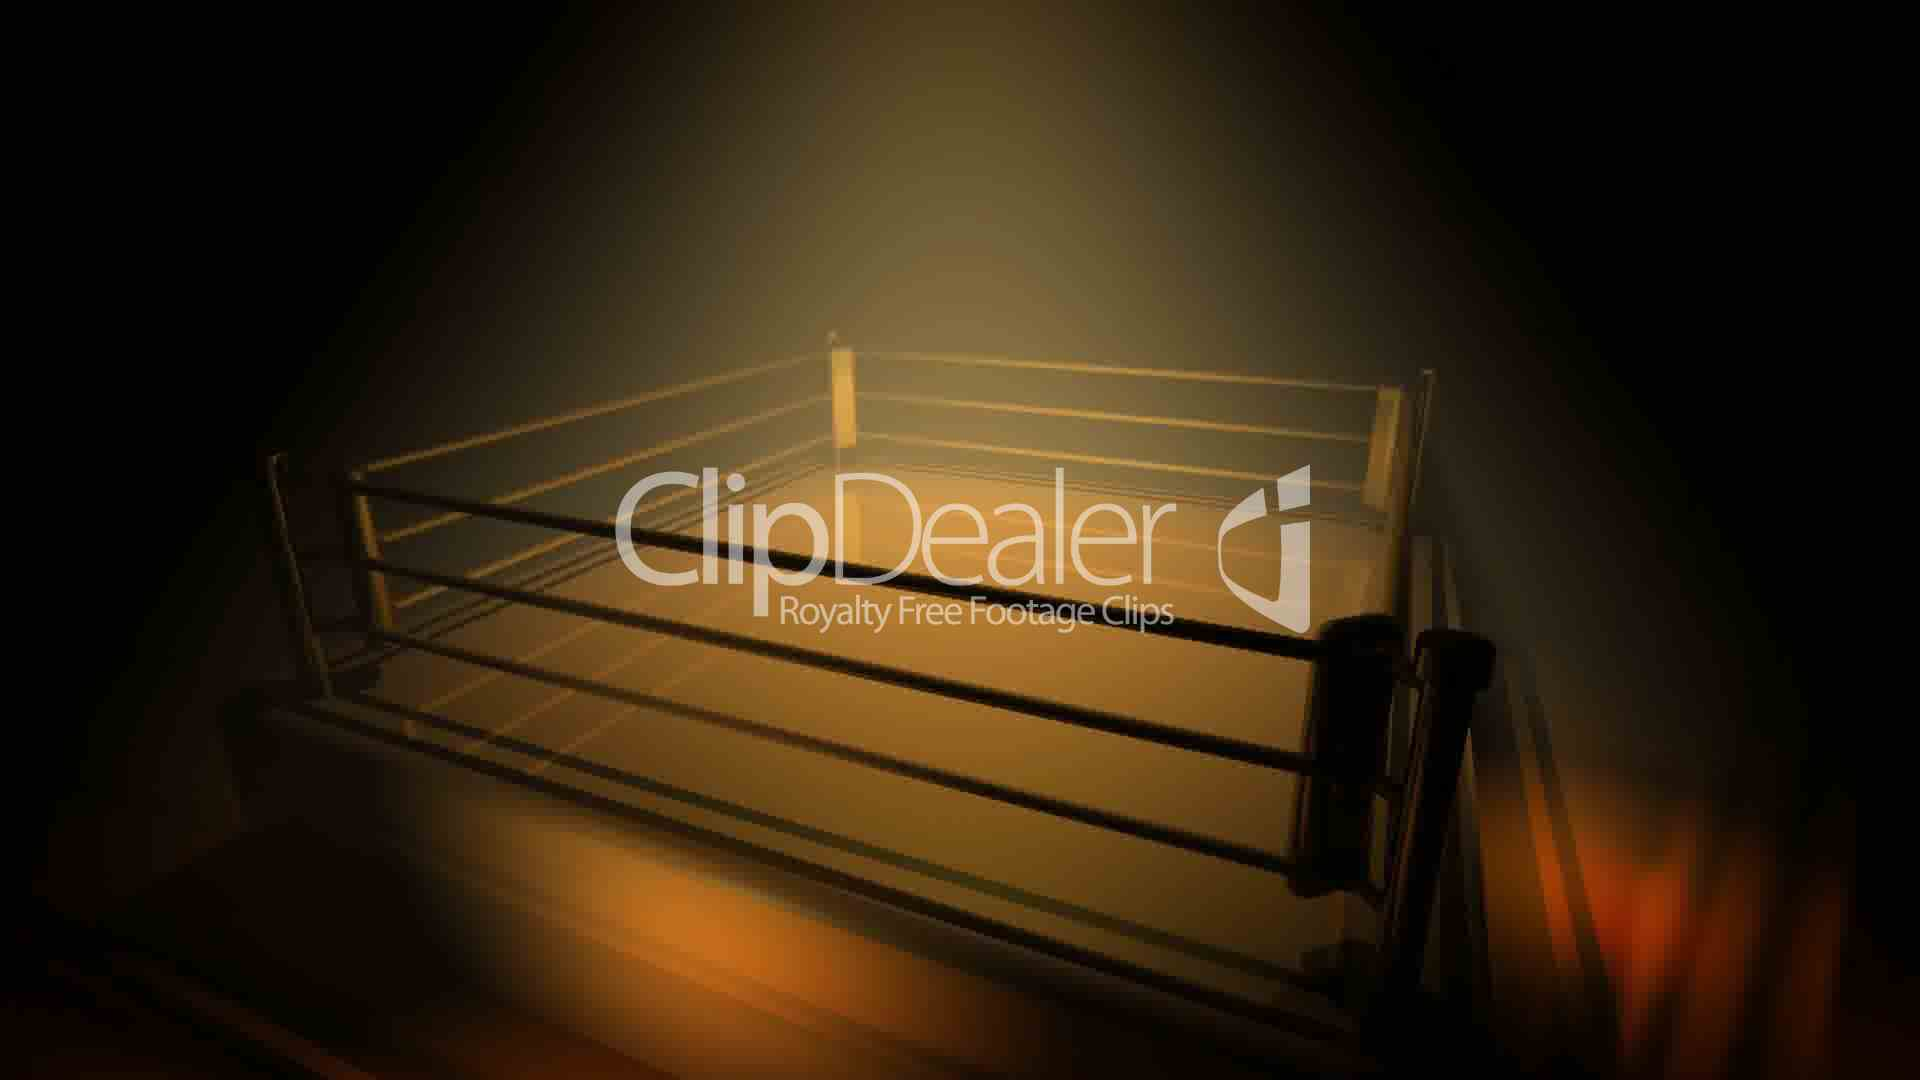 Hd Christbaumschmuck Royalty Free Video And Stock Footage Boxing Ring Hd Loop 5 Royalty Free Video And Stock Footage